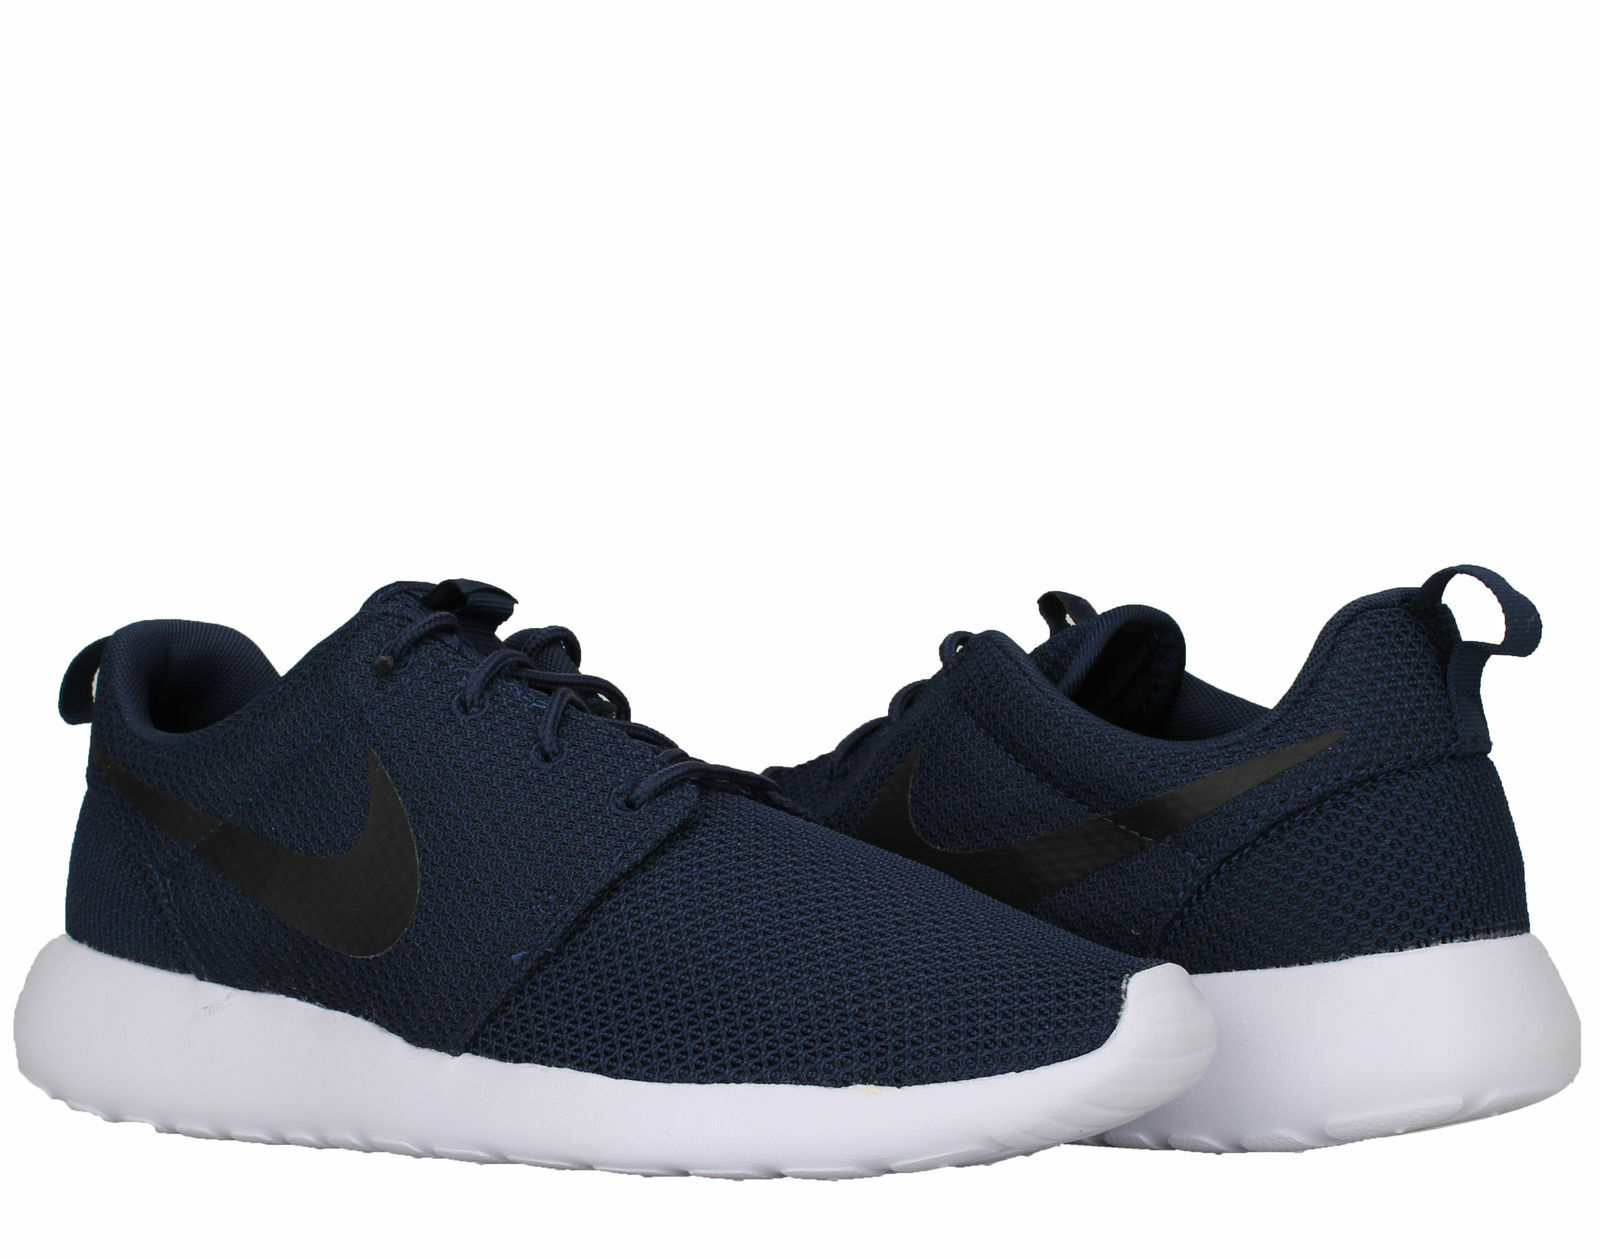 Uomo Nike Roshe Roshe Roshe One Midnight Navy nero bianca Dimensiones 8-12 New In Box 511881-405 471c37